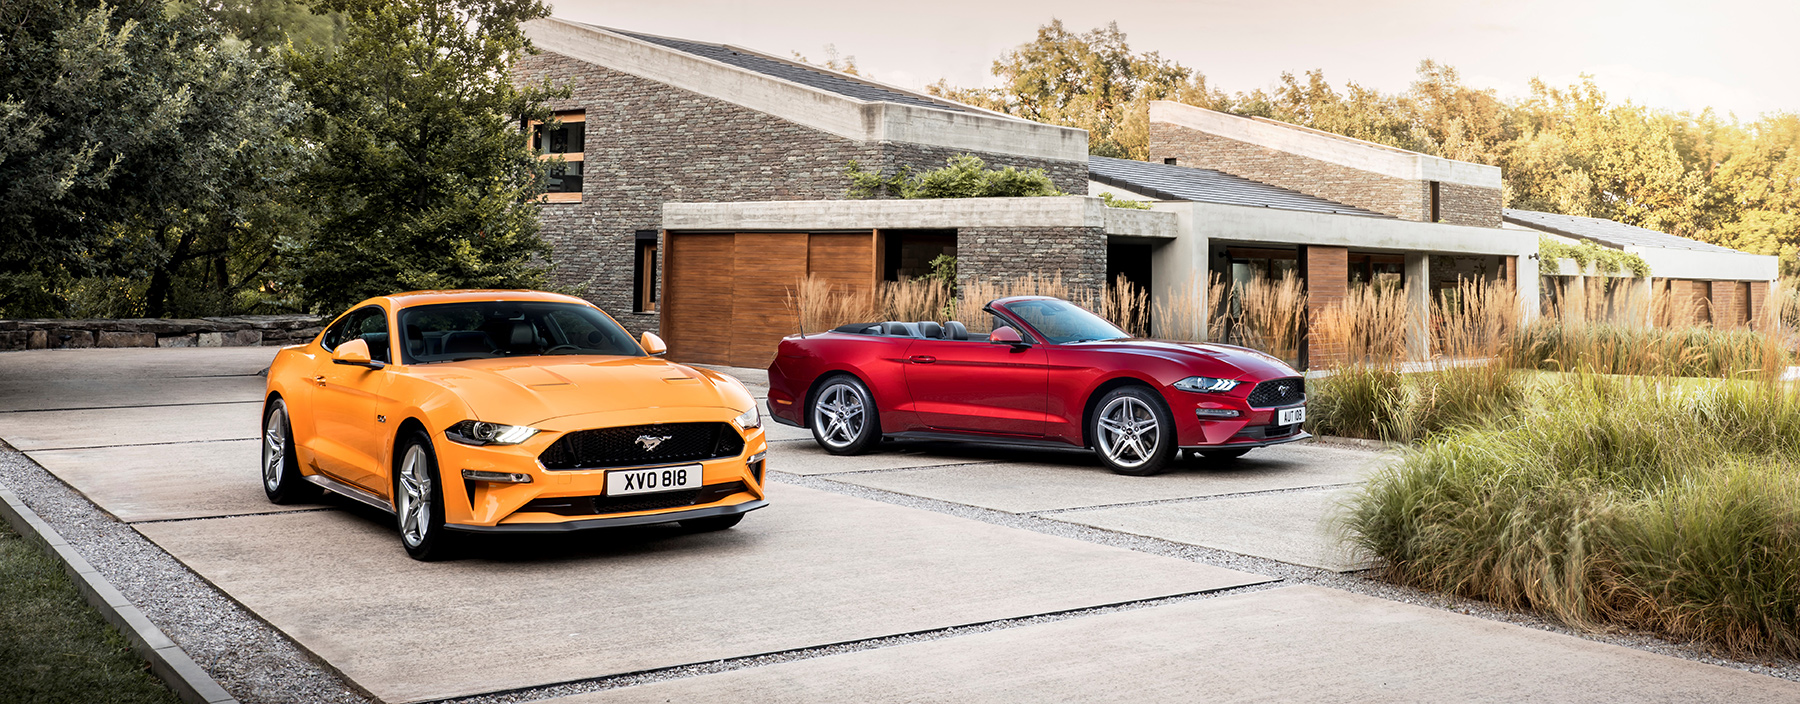 TrackWorthy - 2017 Ford Mustang Coupe and Convertible